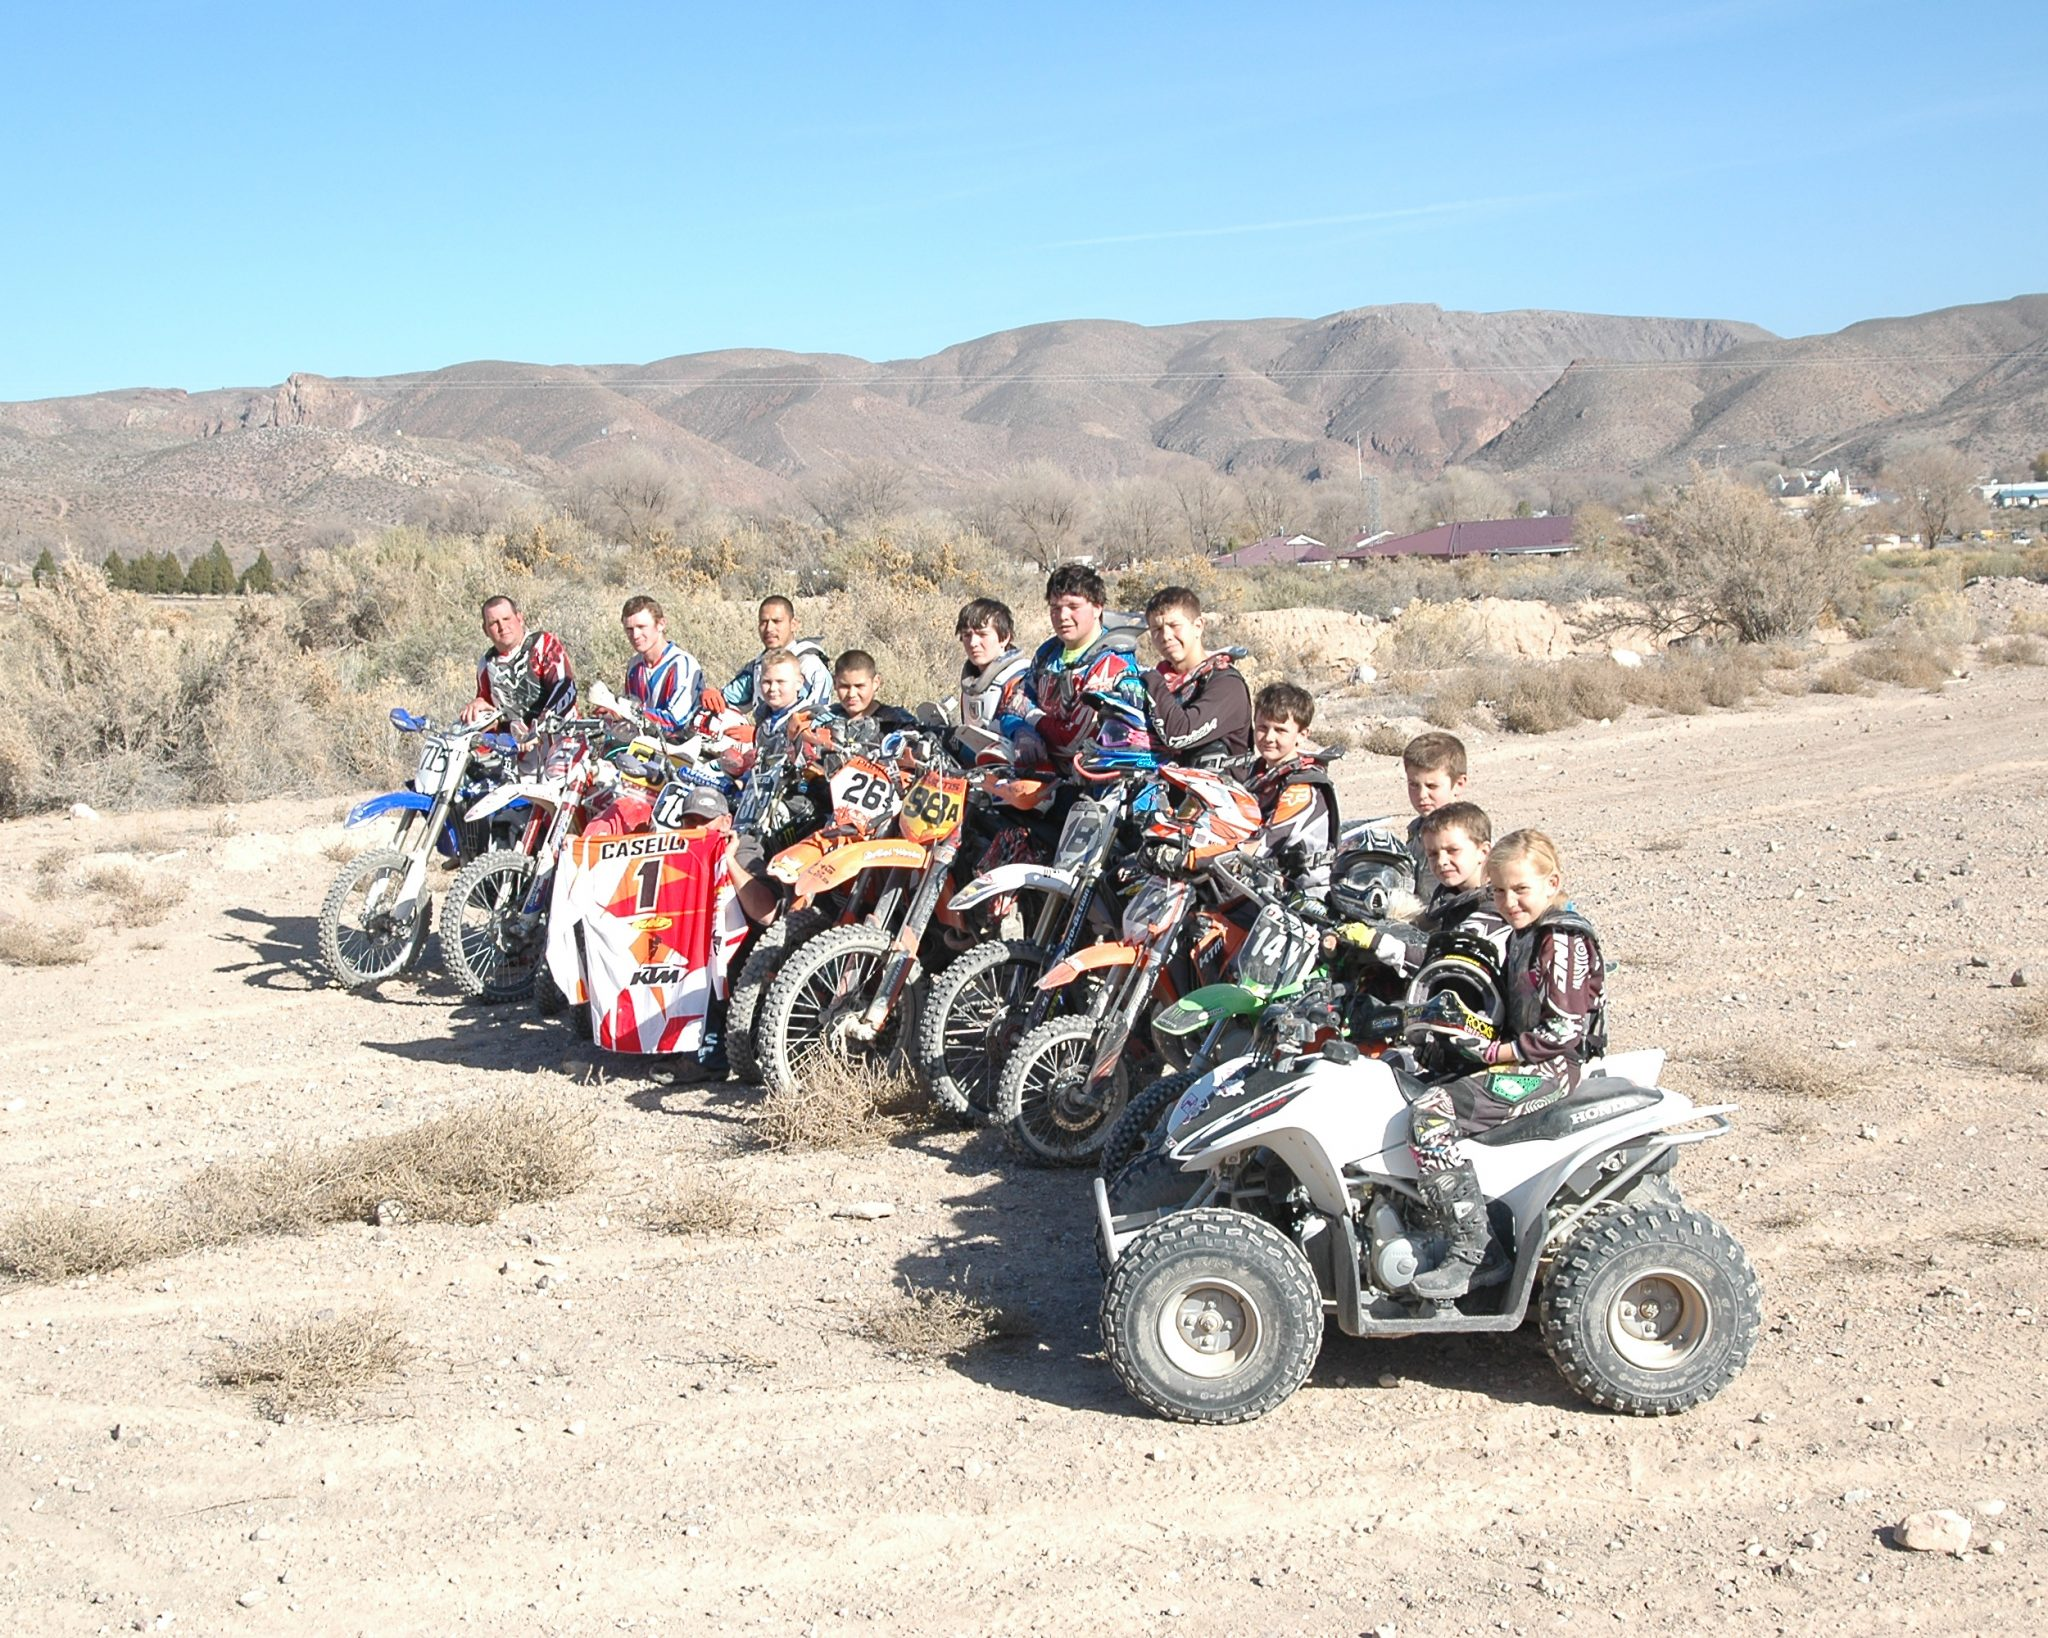 Off-Roading in Lincoln County: Loads of Trails and Racing Events Make Lincoln County an Off-Roader's Dream